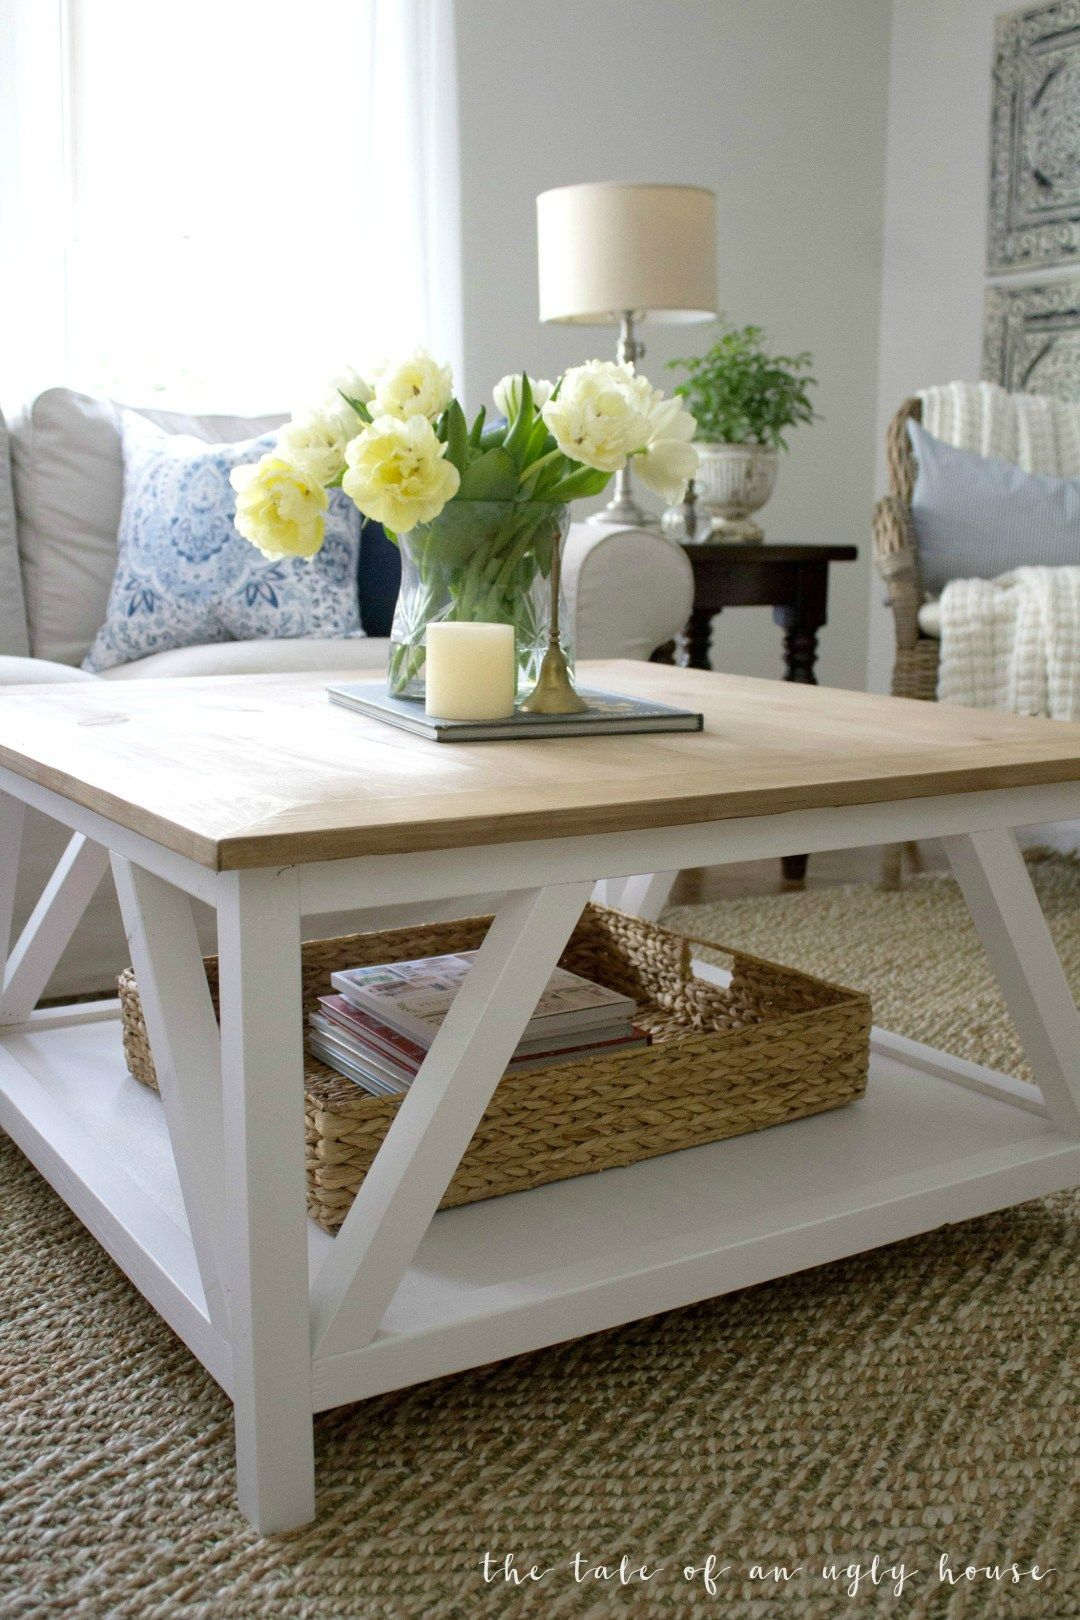 diy modern farmhouse coffee table house deco decorating end decor square sincerely marie designs white outdoor side brown saltman furniture company ethan allen atlanta broyhill